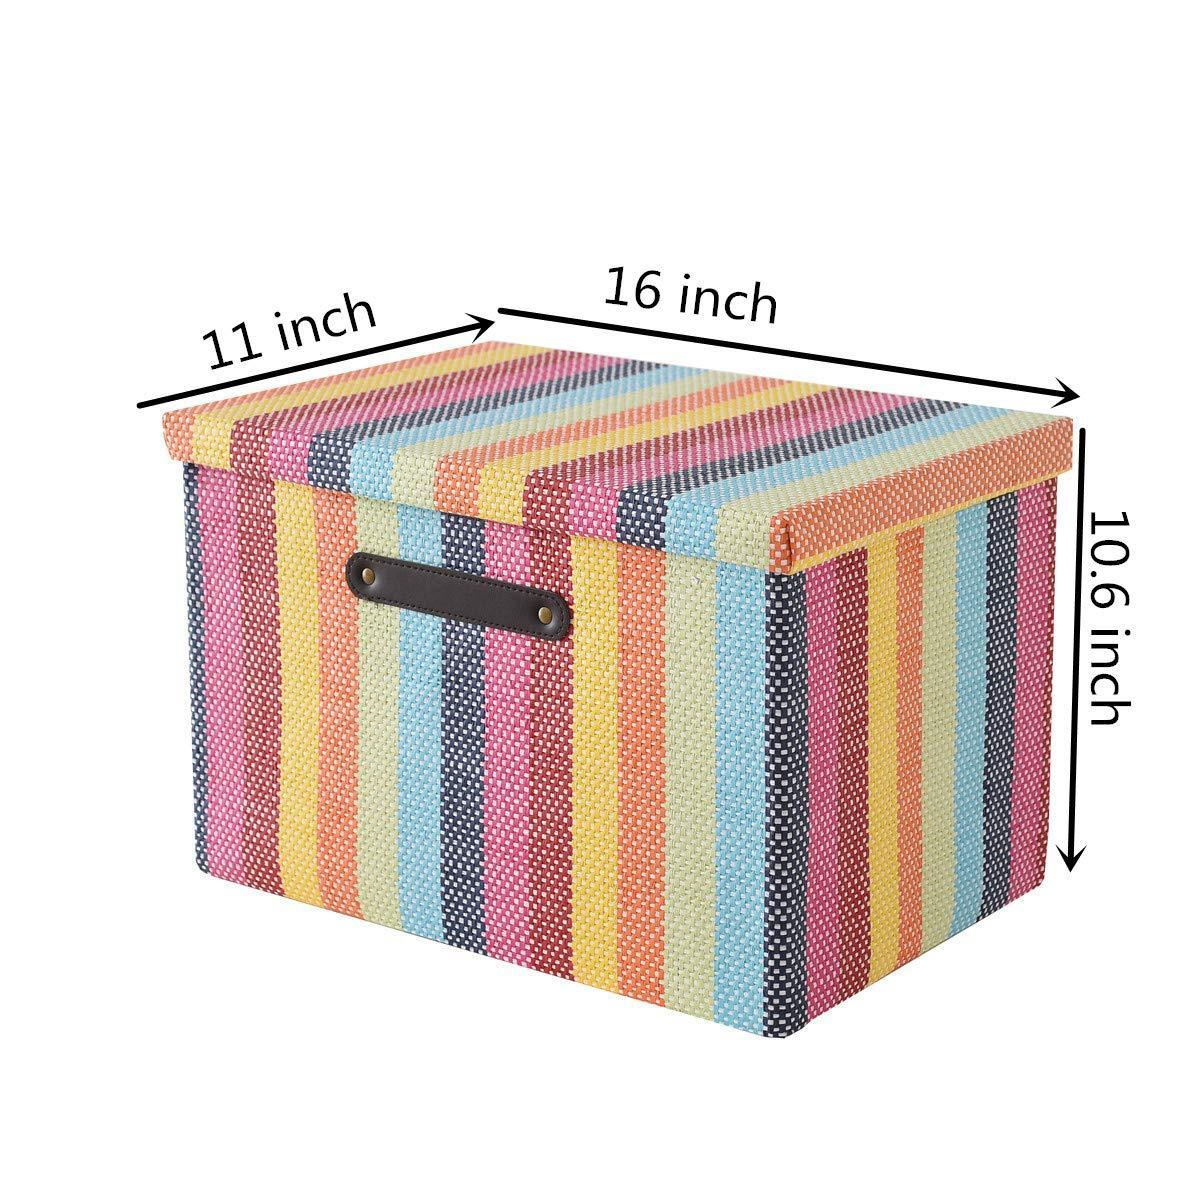 Discover large fabric storage box with lid and leather handles by tegance decorative collapsible storage bin for office home closet toys rainbow color 16x11x10 6 inch 3pack rainbow box